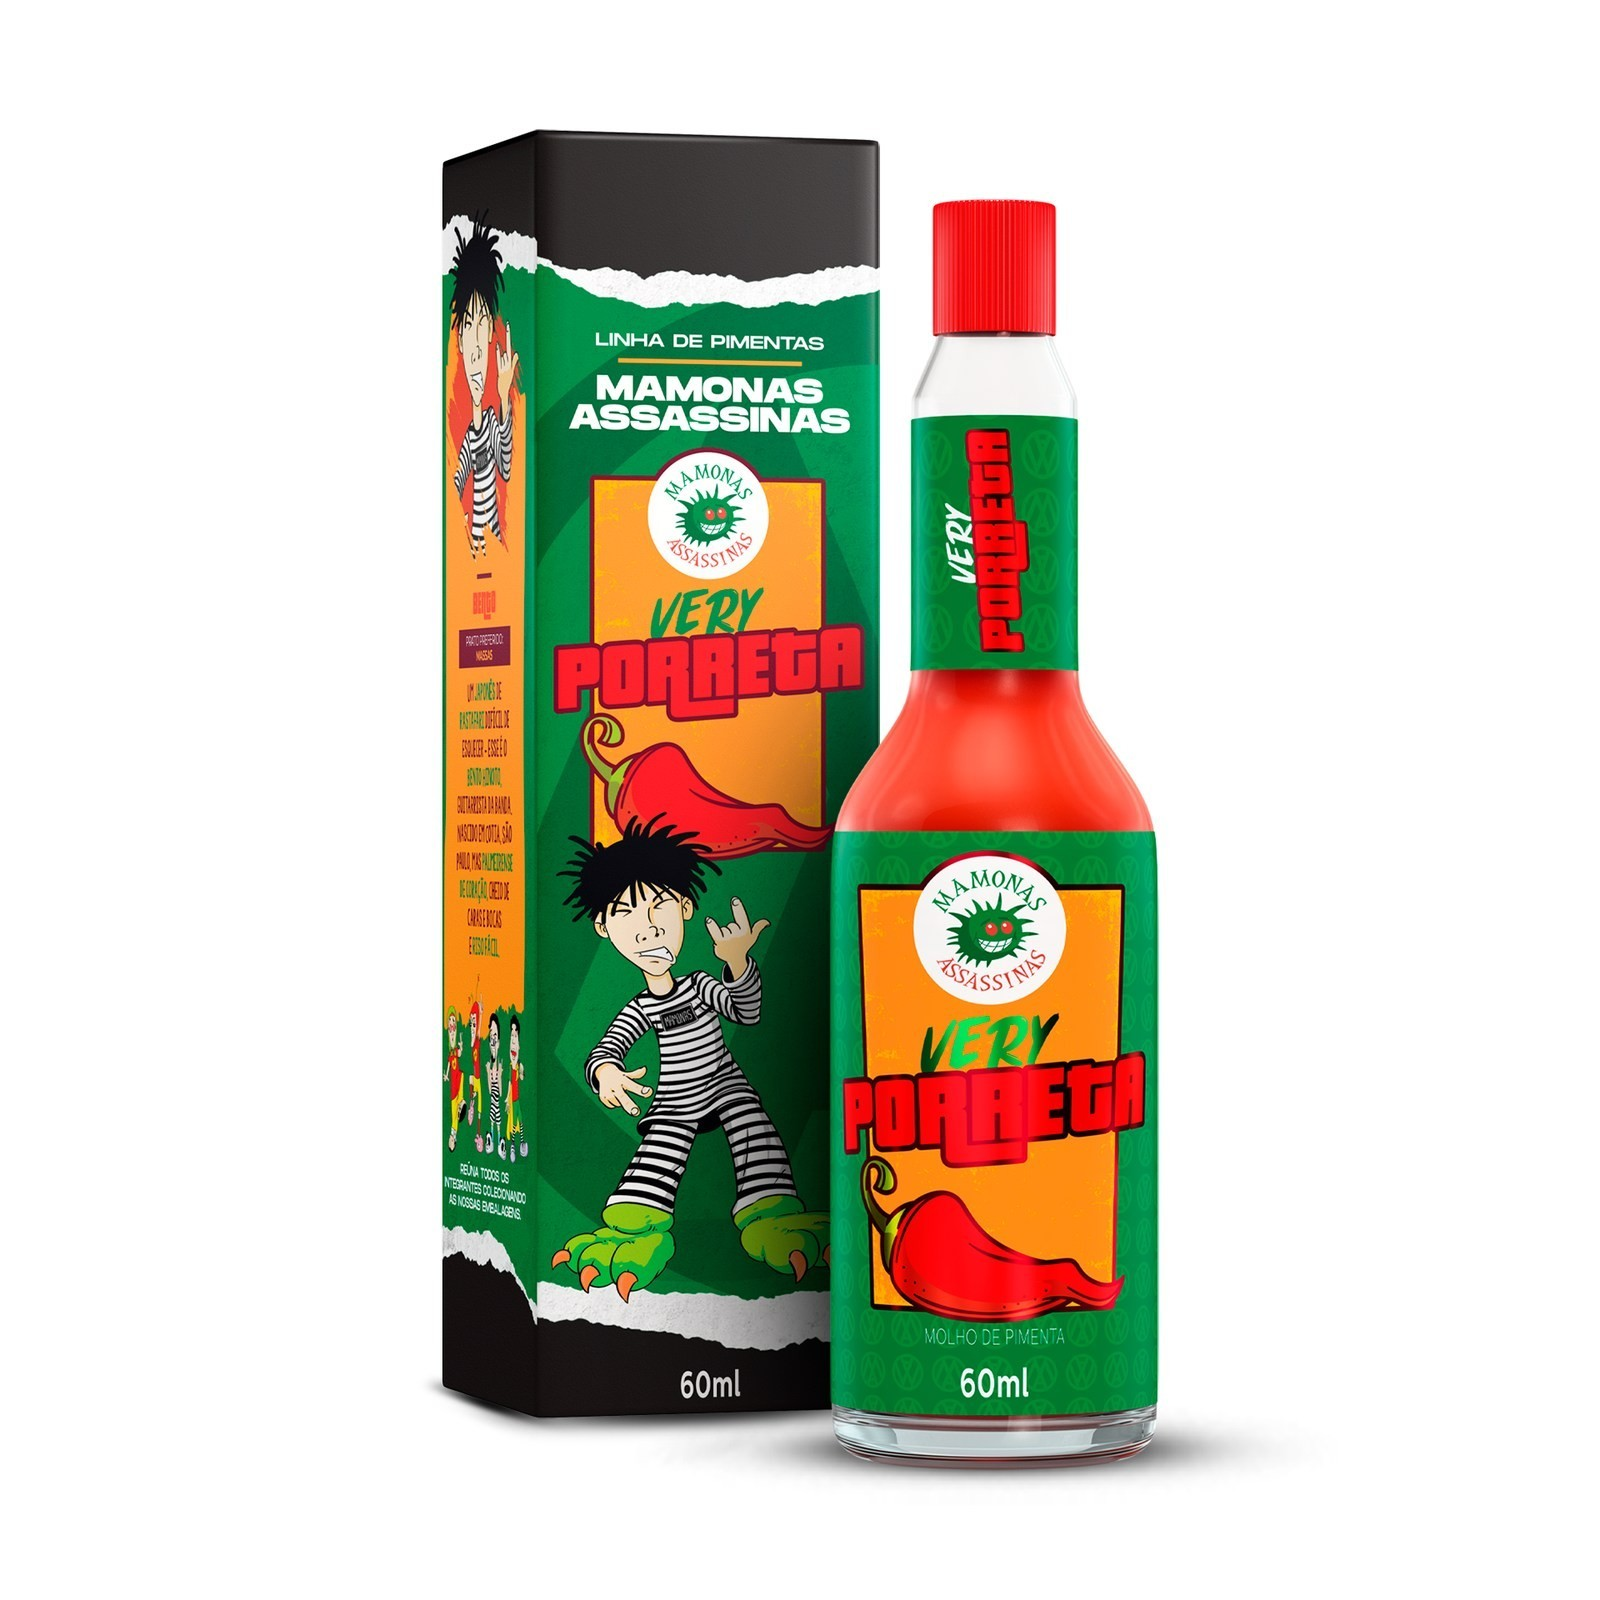 Molho de Pimenta Mamonas Assassinas - Very Porreta 60 ml (Bento)